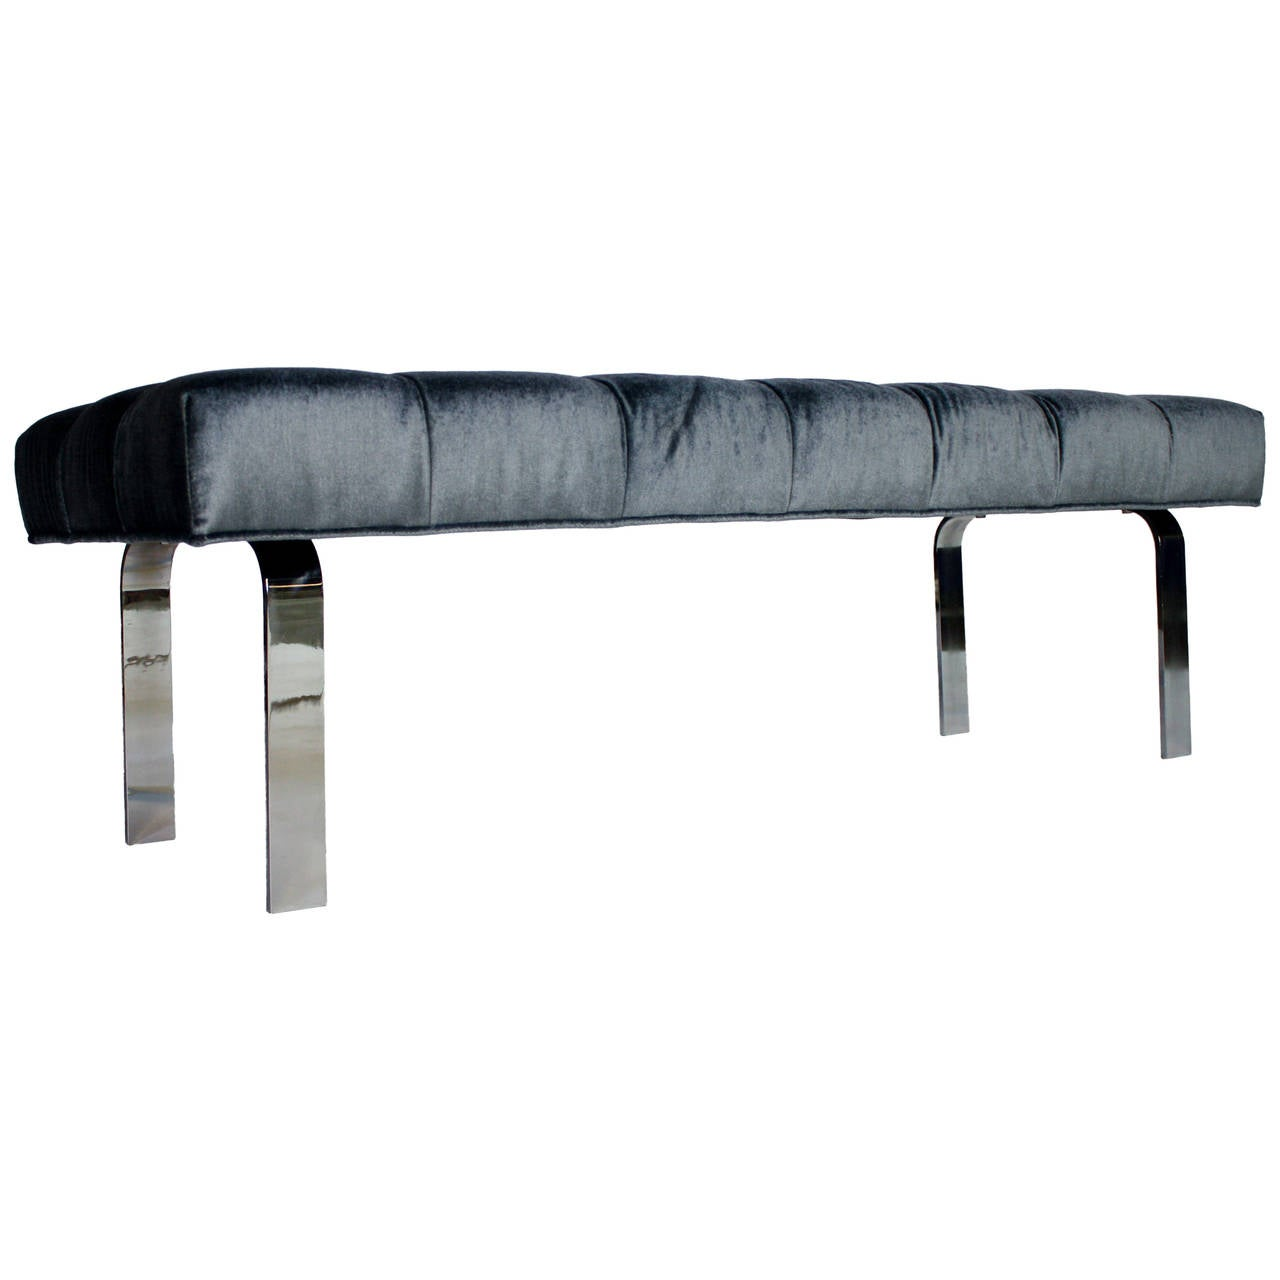 1970s Steel Frame and Steel Blue Mohair Tufted Bench 1